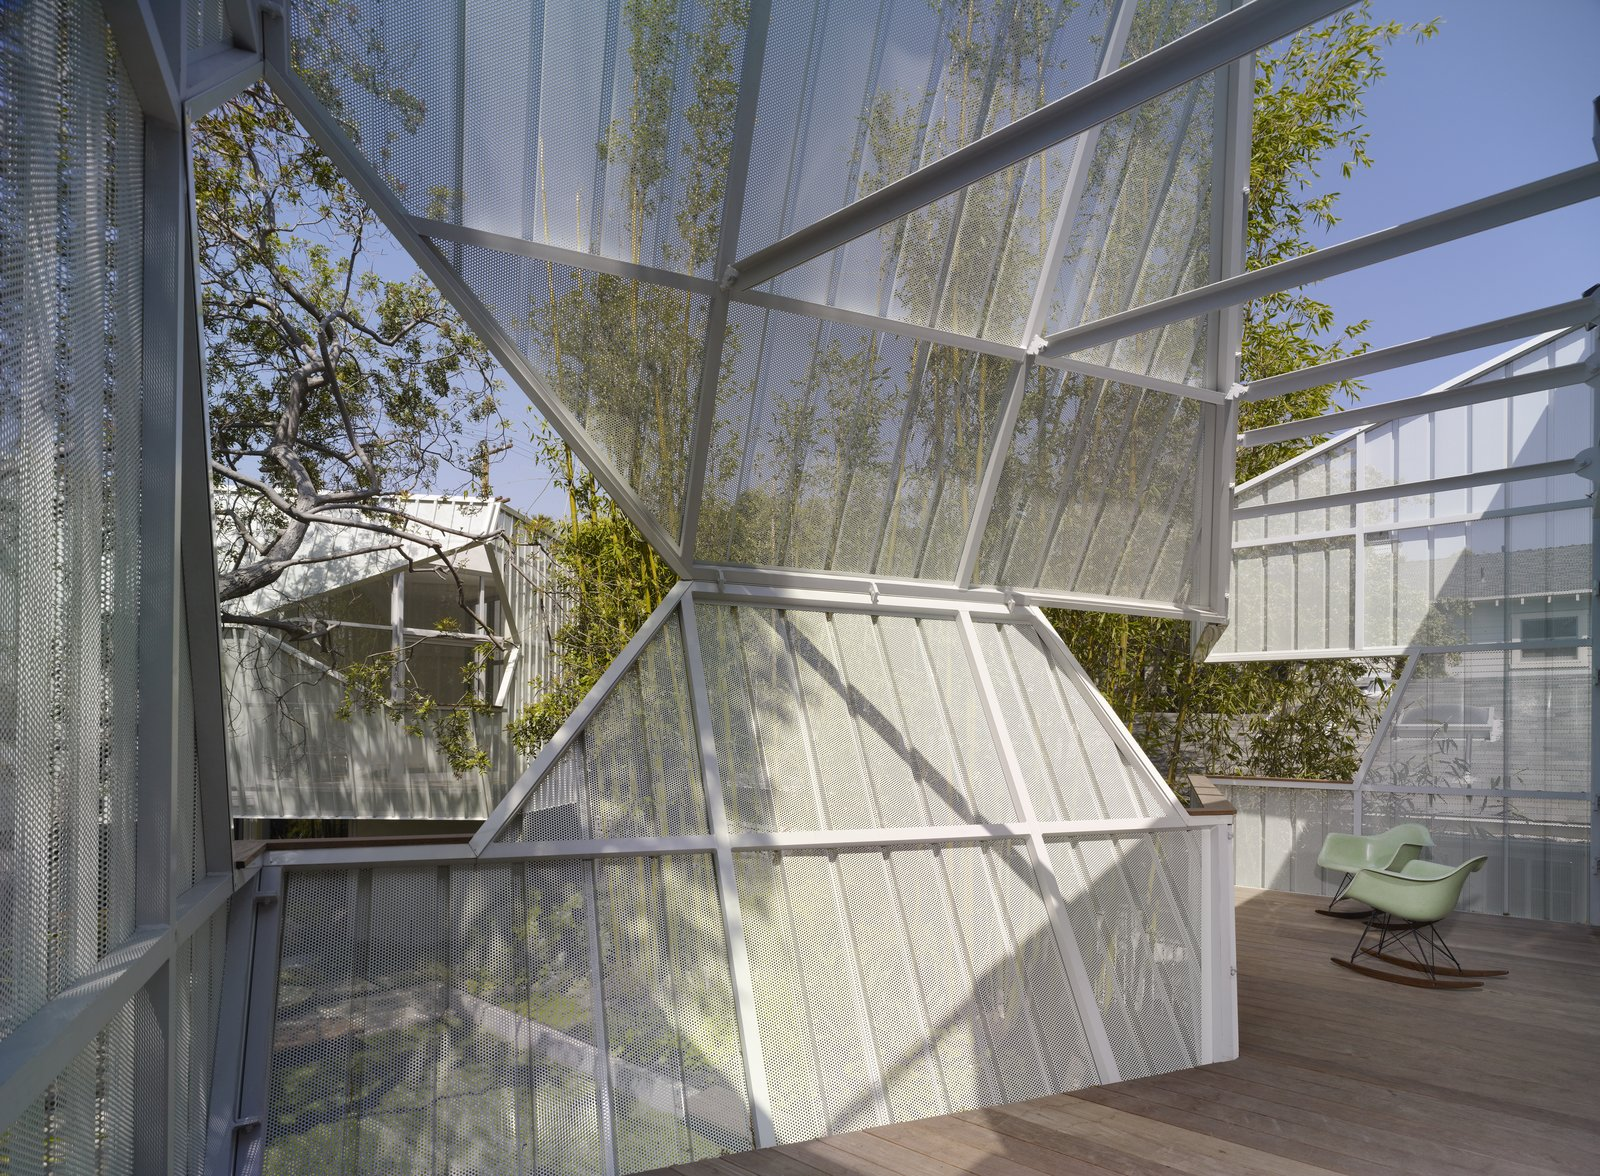 Outdoor  Photo 9 of 10 in A Perforated Screen Brings Privacy and Natural Light to This Bold Venice Home